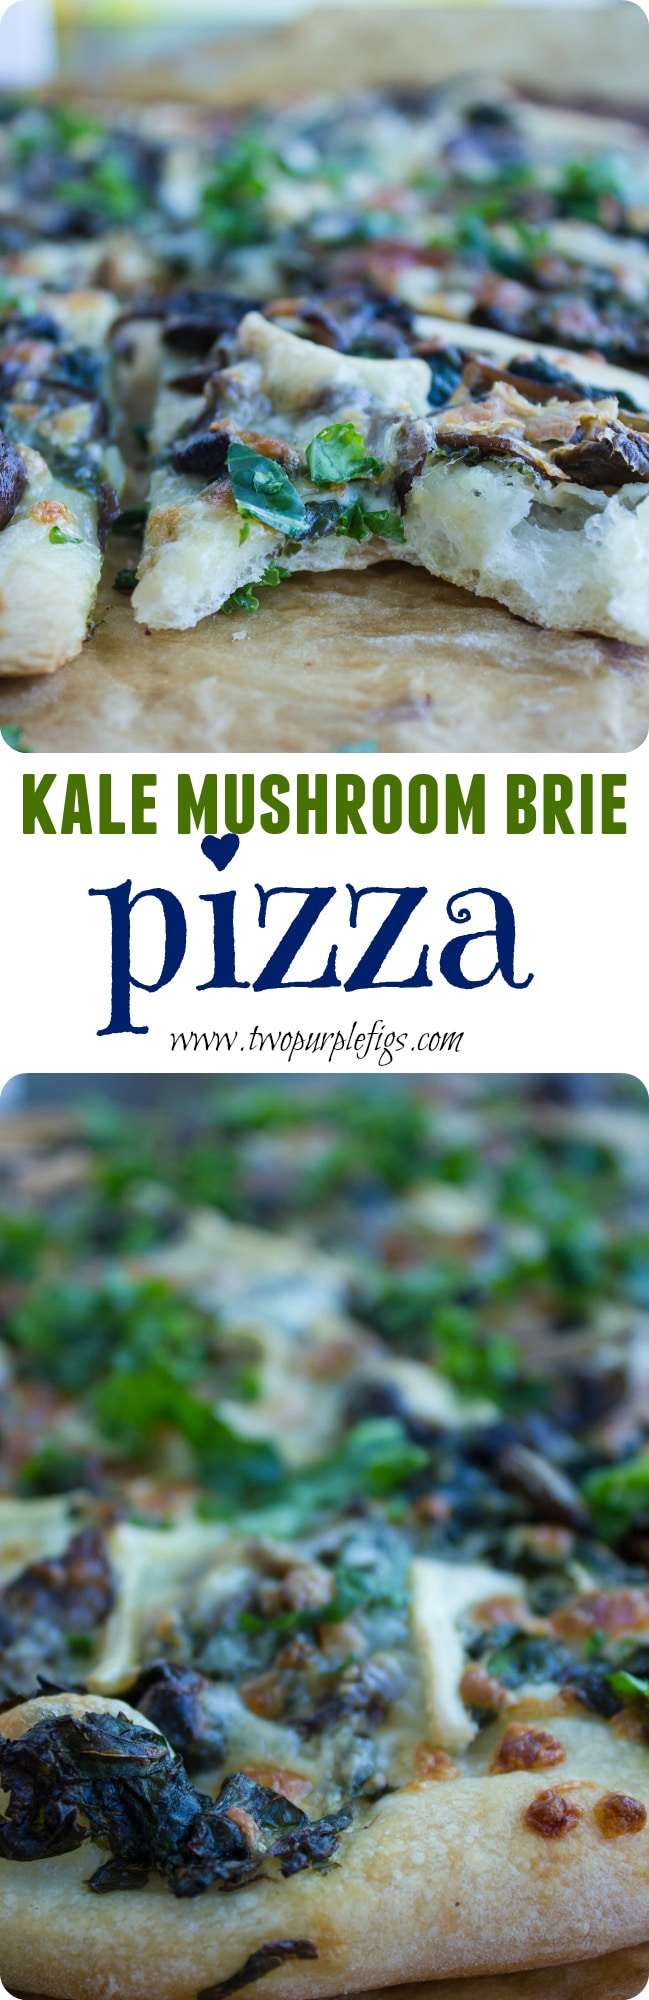 This kale mushroom brie pizza recipe is what gourmet pizza stands for - thin, rustic and light.A mix of cream cheese, mozzarella, and brie makes for the perfect creaminess to balance the bitterness of the kale!#homemadepizza, #vegetarianrecipes, #thincrustpizza, #kalerecipes, #Italianrecipes